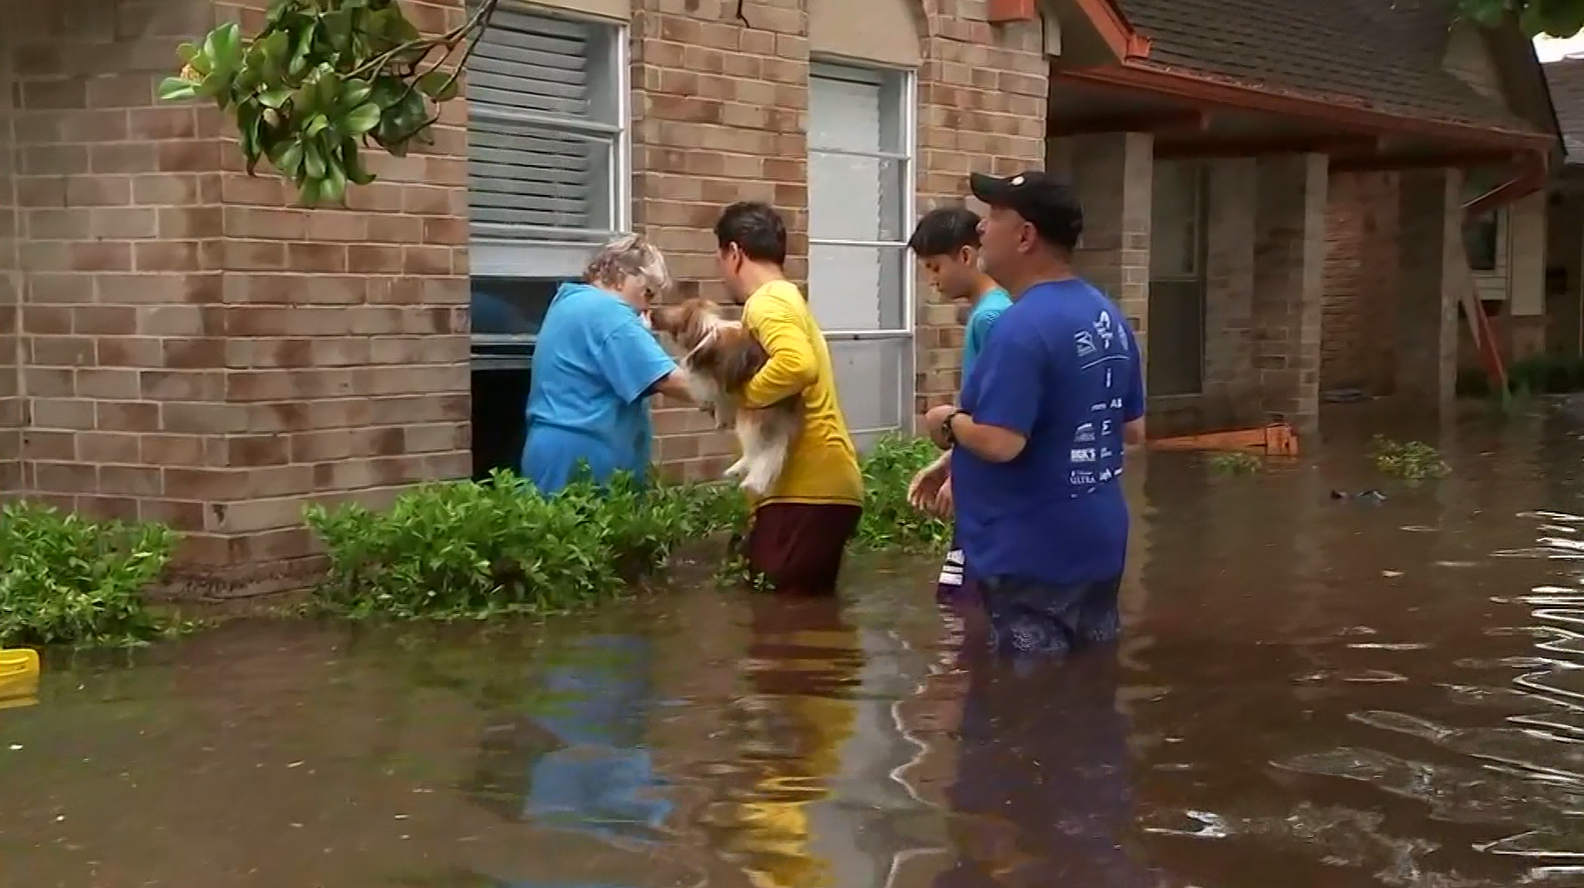 Woman rescued  (KTRK/CNN)